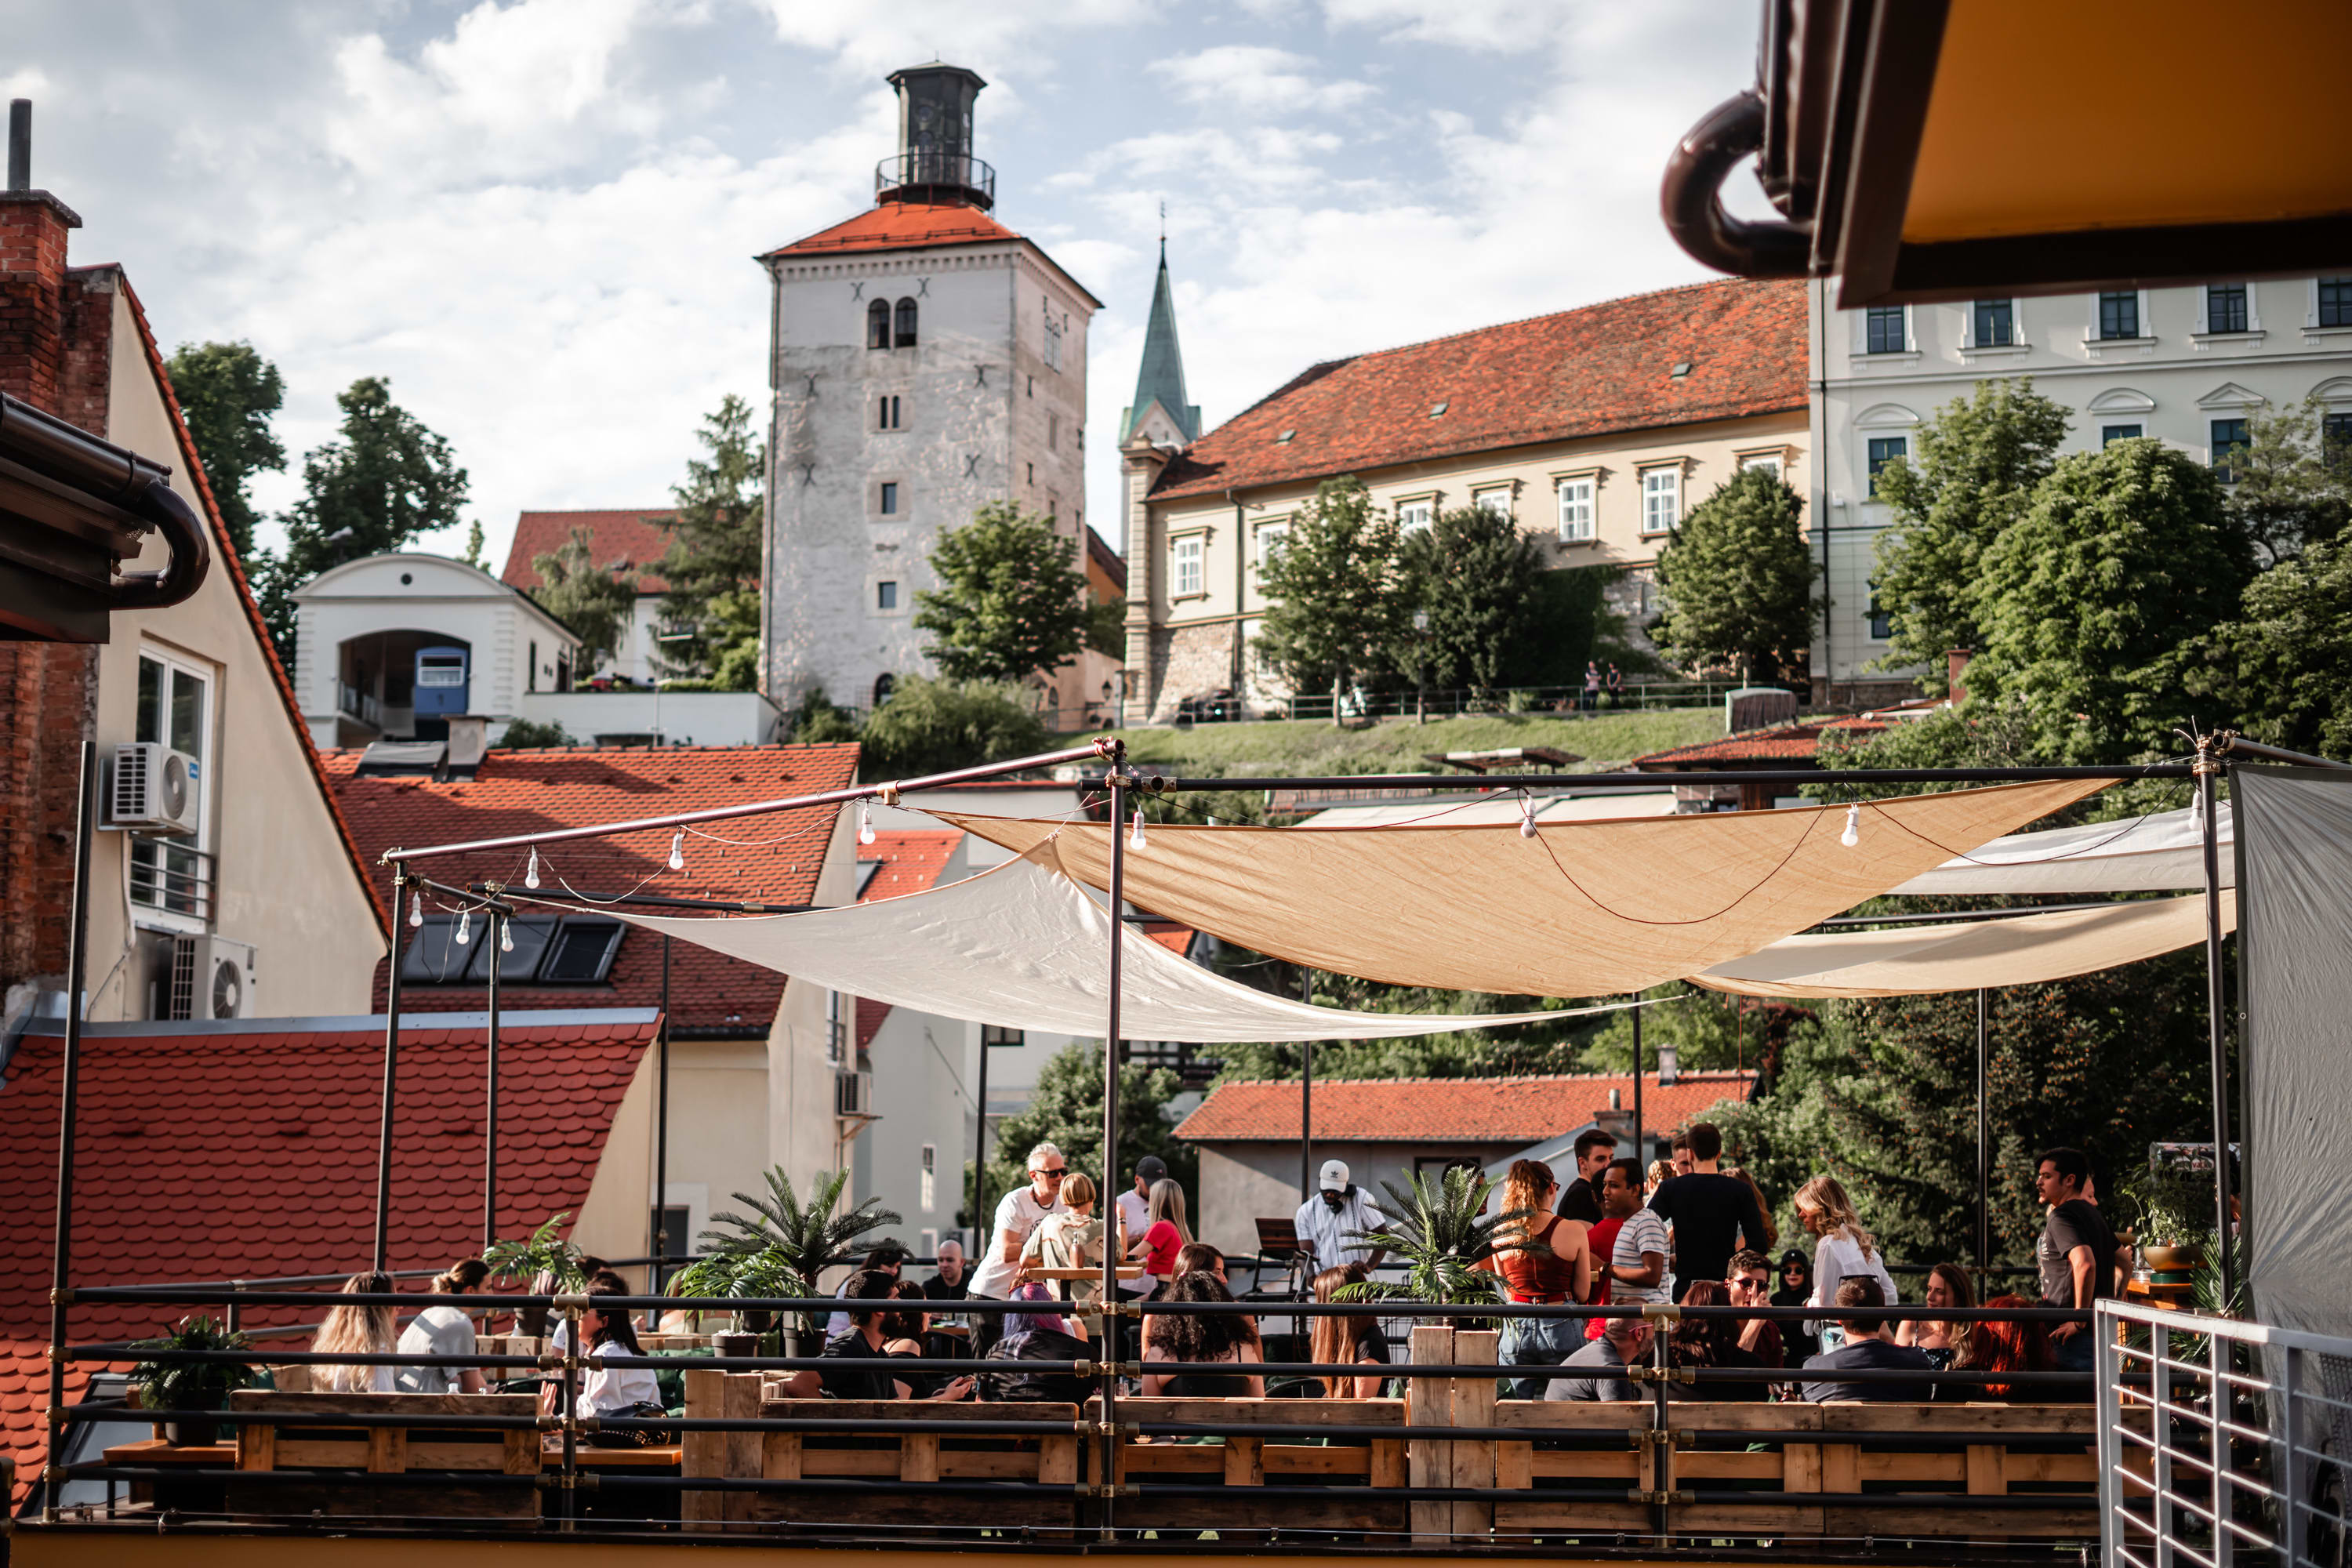 Timeout Heritage Hotel Zagreb In Zagreb Croatia Find Cheap Hostels And Rooms At Hostelworld Com